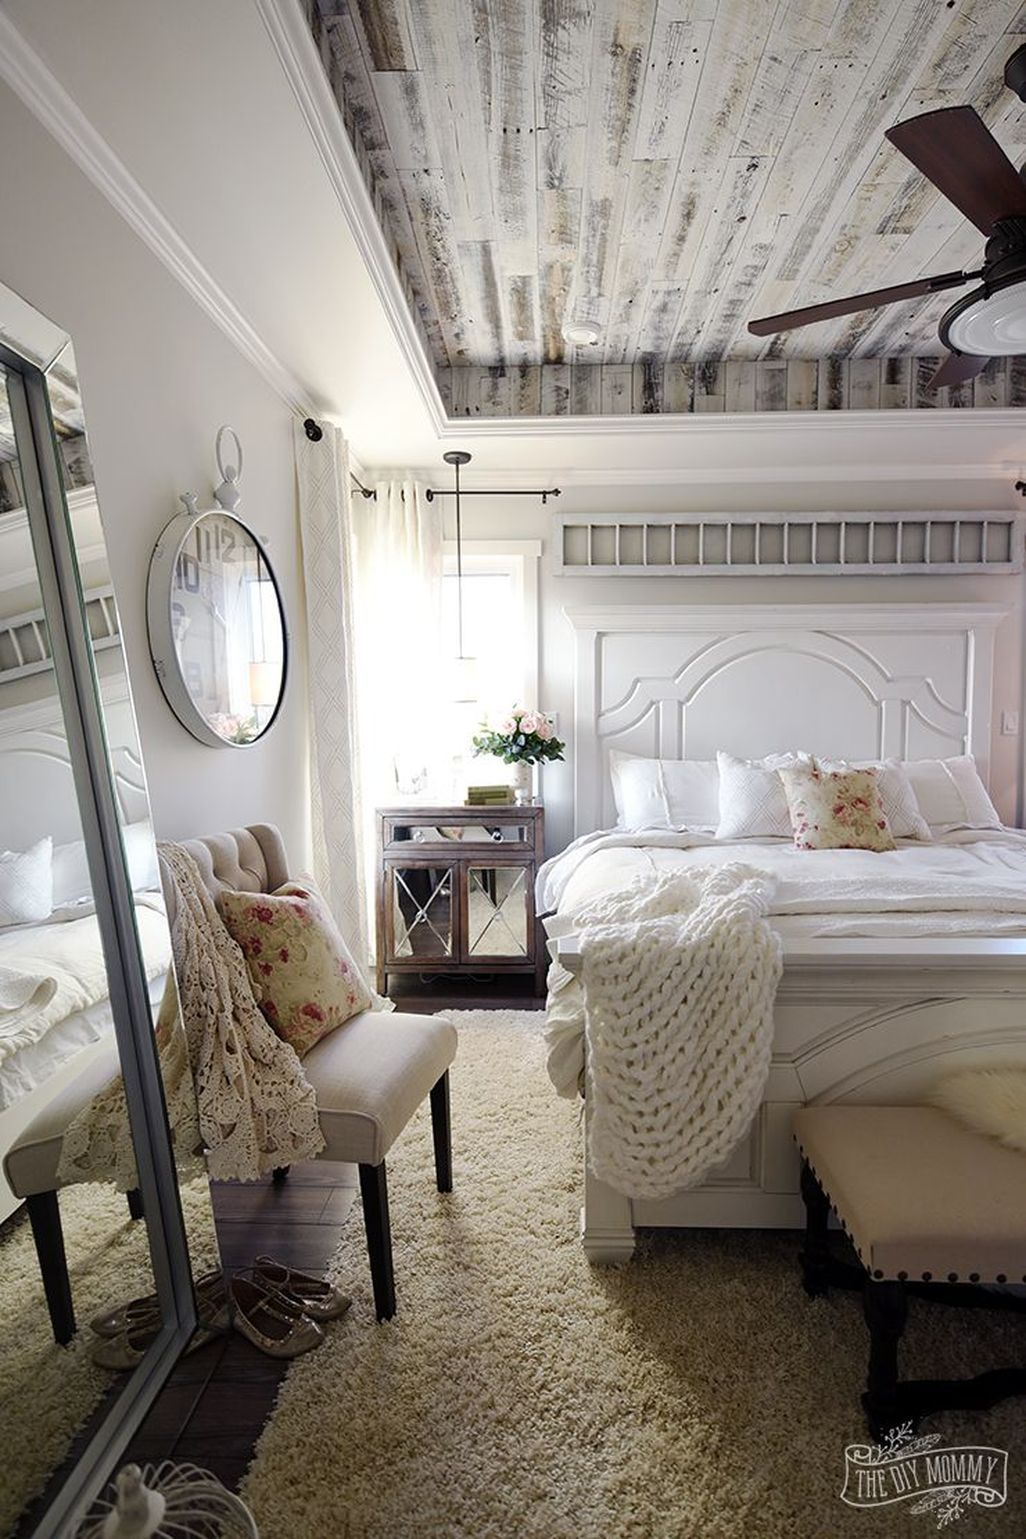 42 Cool Rustic Farmhouse Master Bedroom Design Ideas